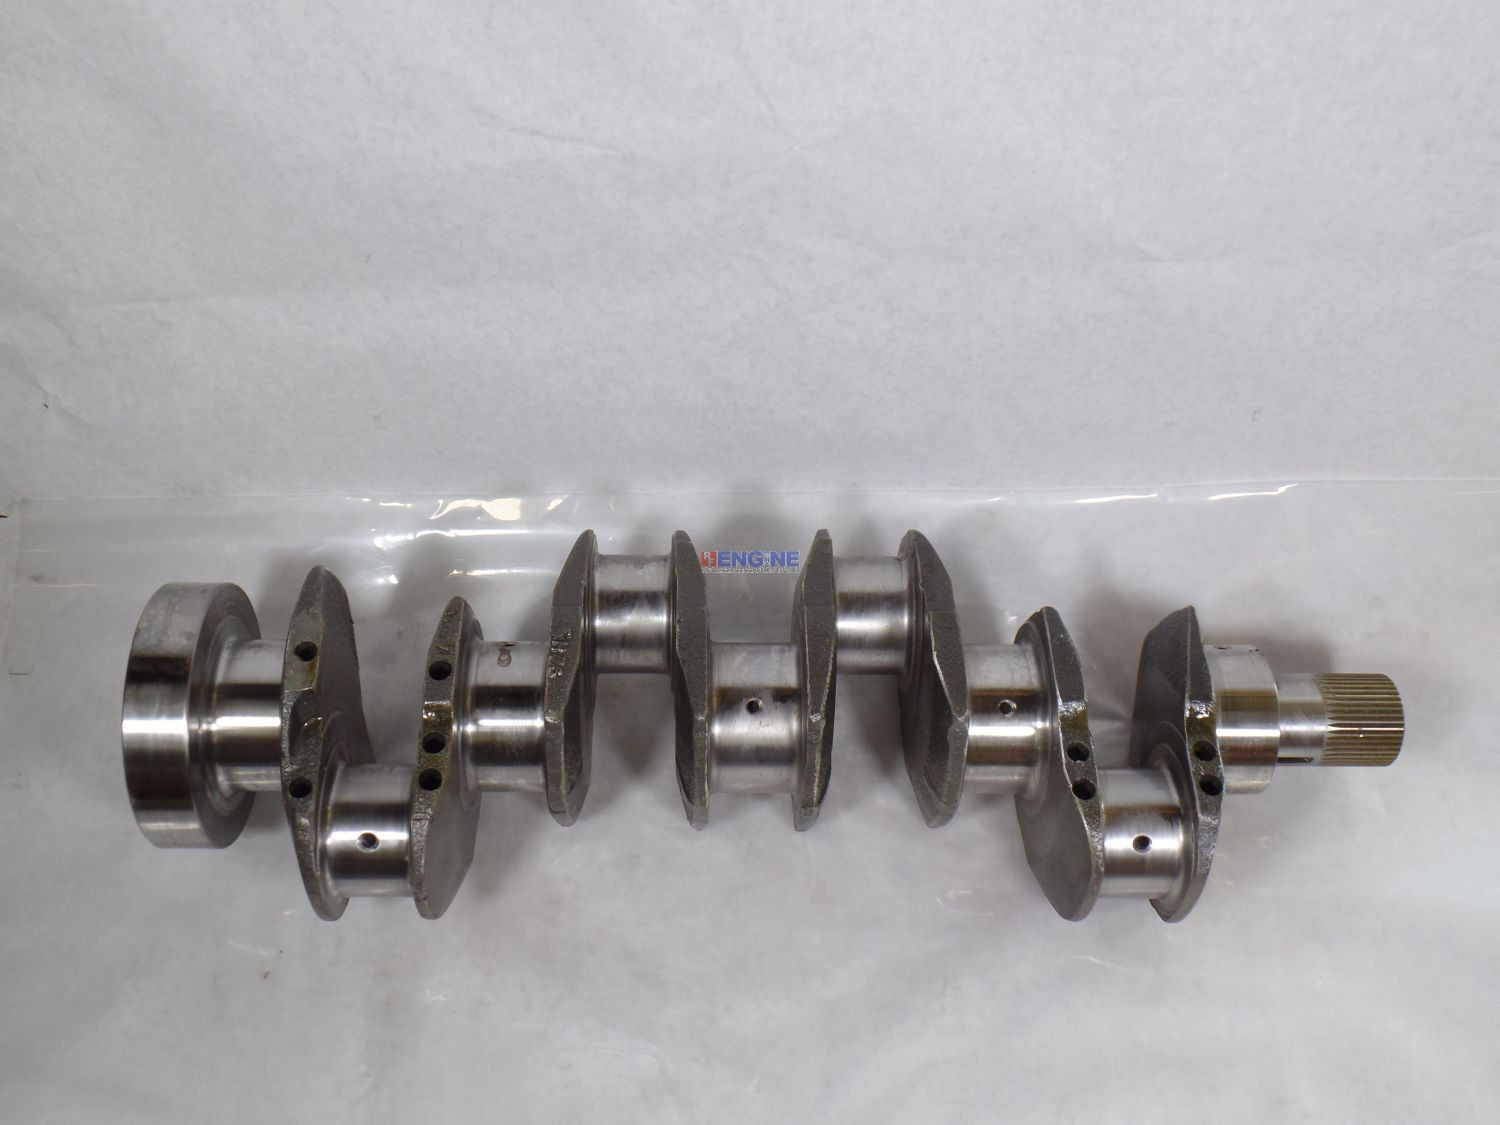 Fits Perkins 1104A-44, 1104C-44T Crankshaft Cat 3054 4 4L New ZZ90239,  232-7400